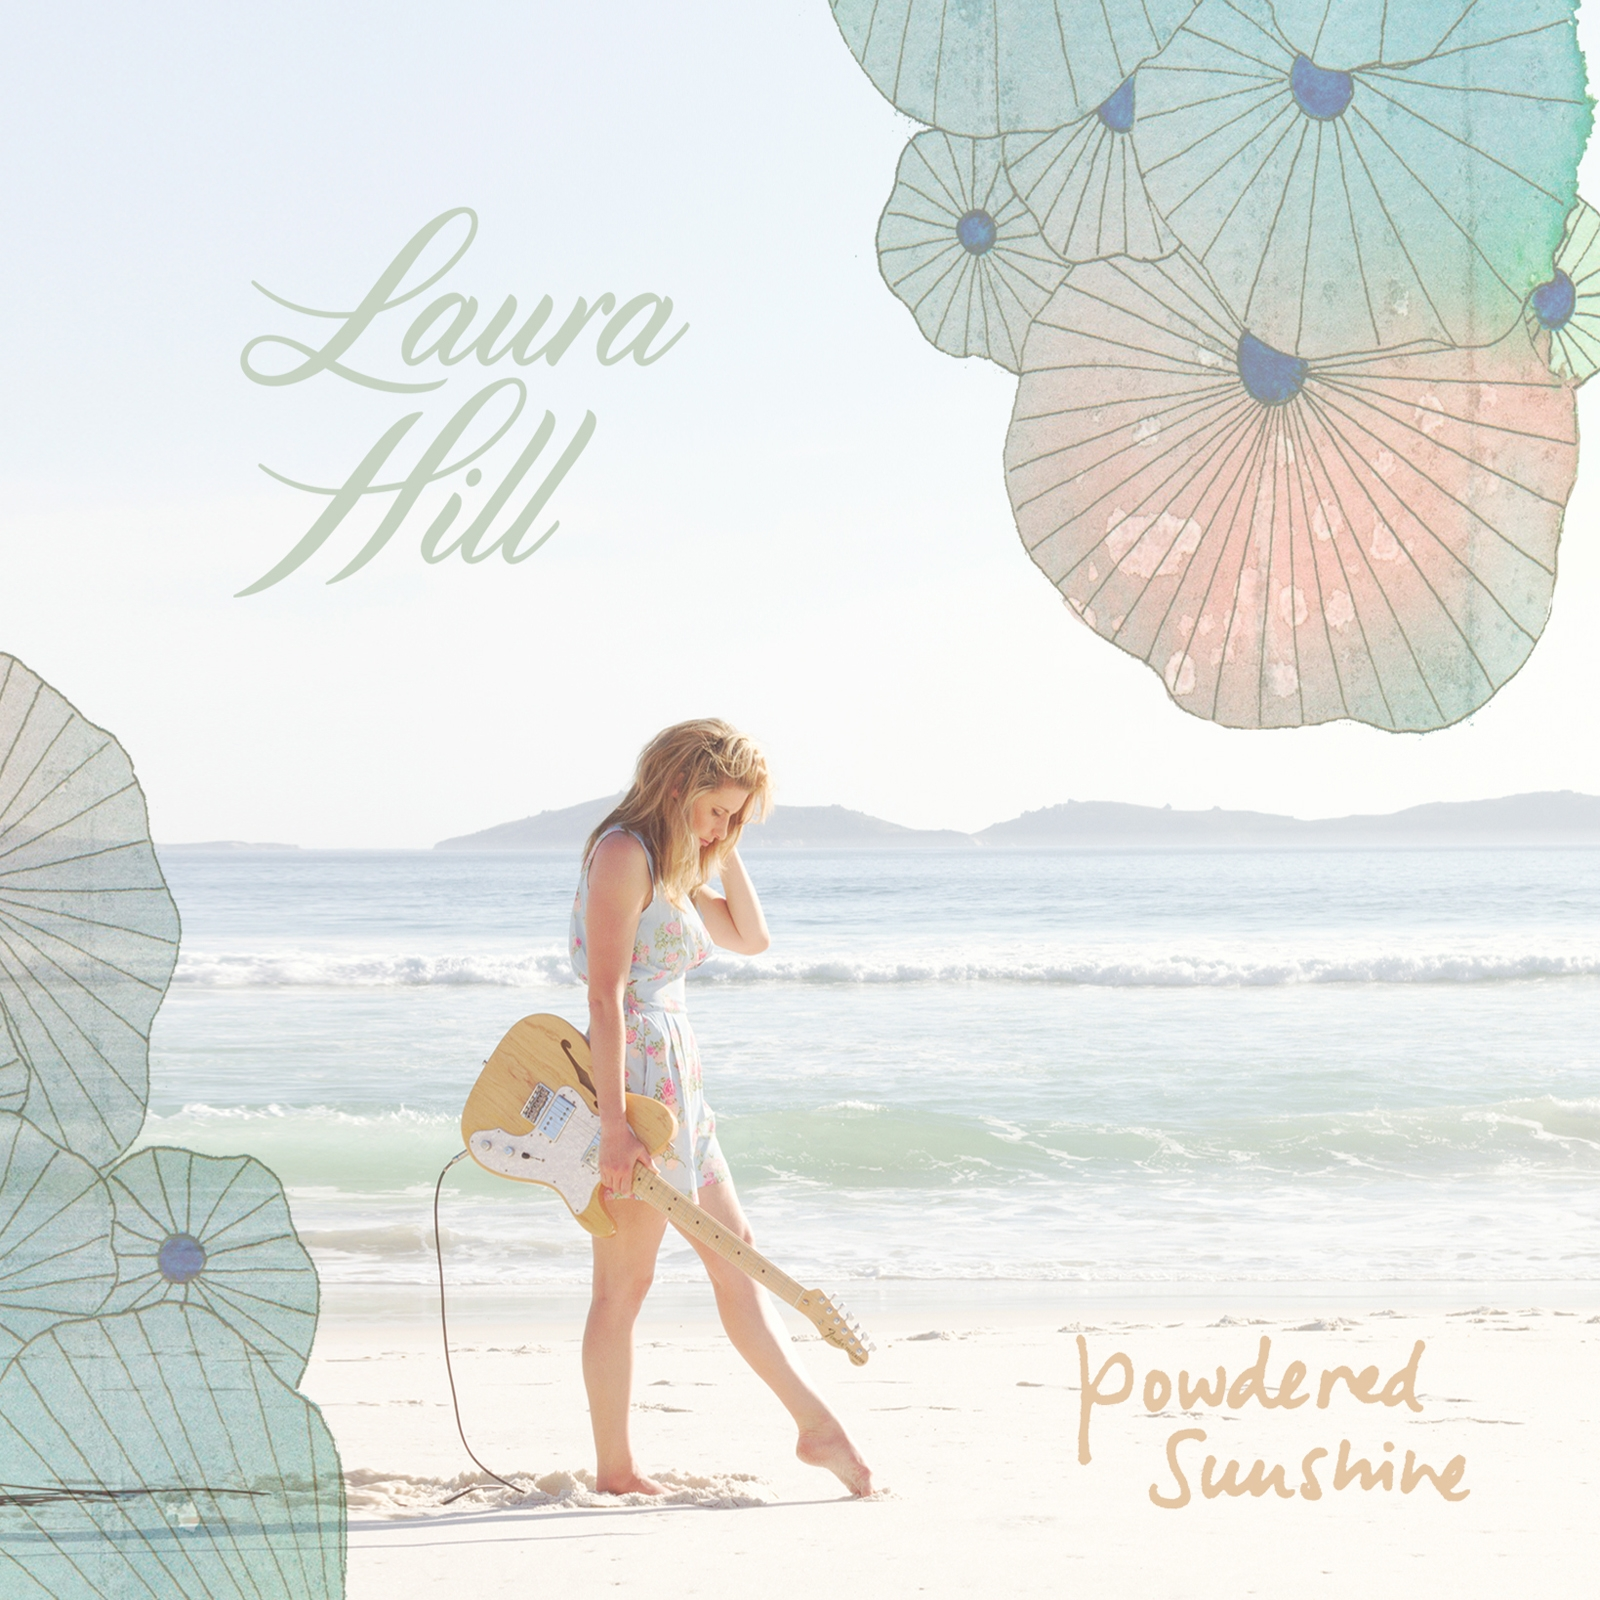 Powdered Sunshine Laura Hill